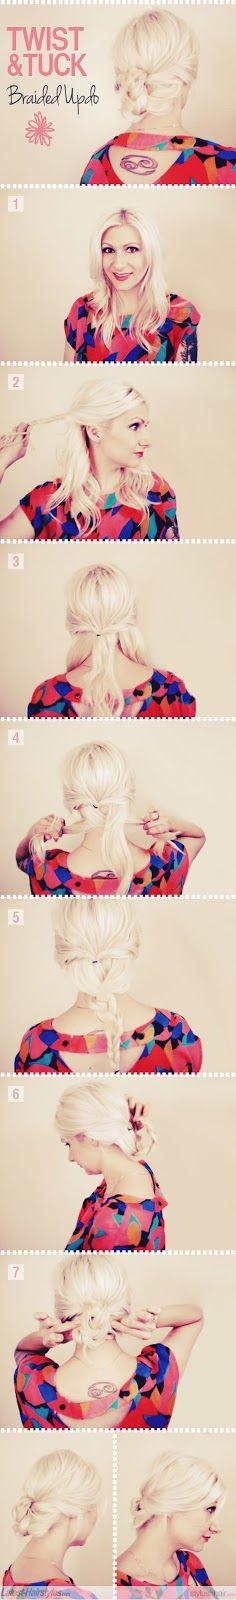 Make A Twist And Tuck Braided Updo For Hair   hairstyles tutorial